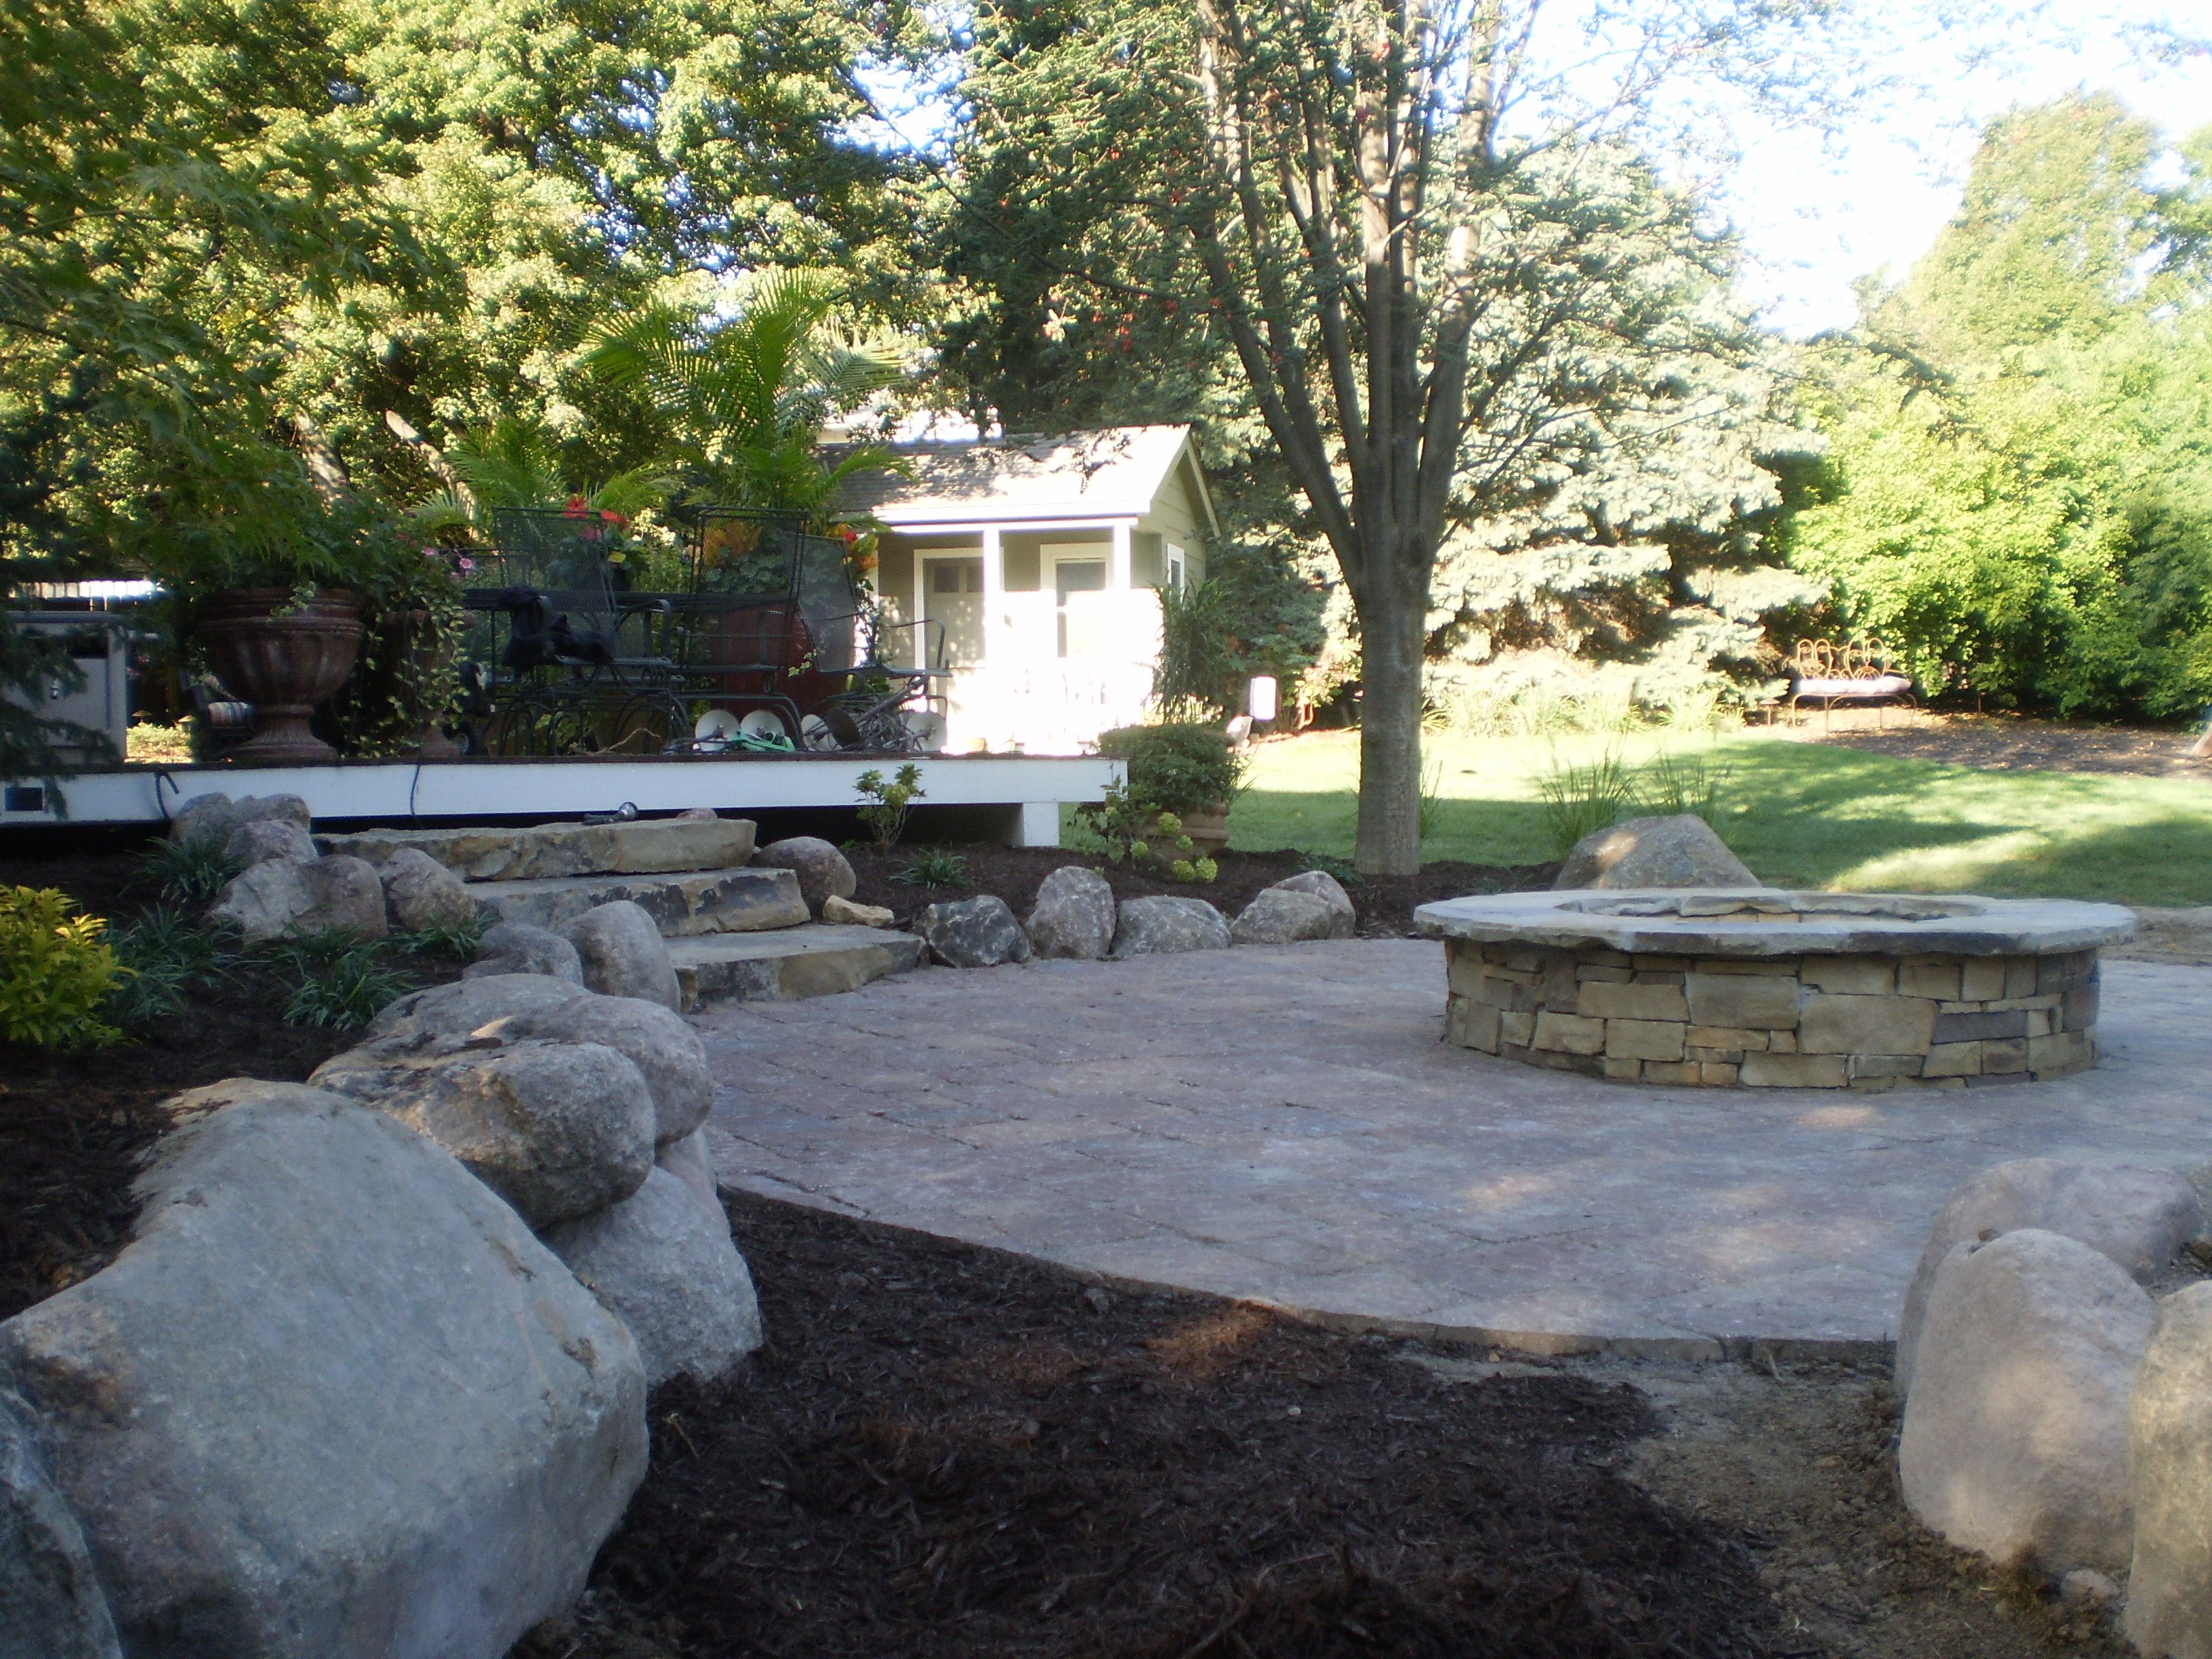 boulders and natural stone steps surround paver patio and fire pit